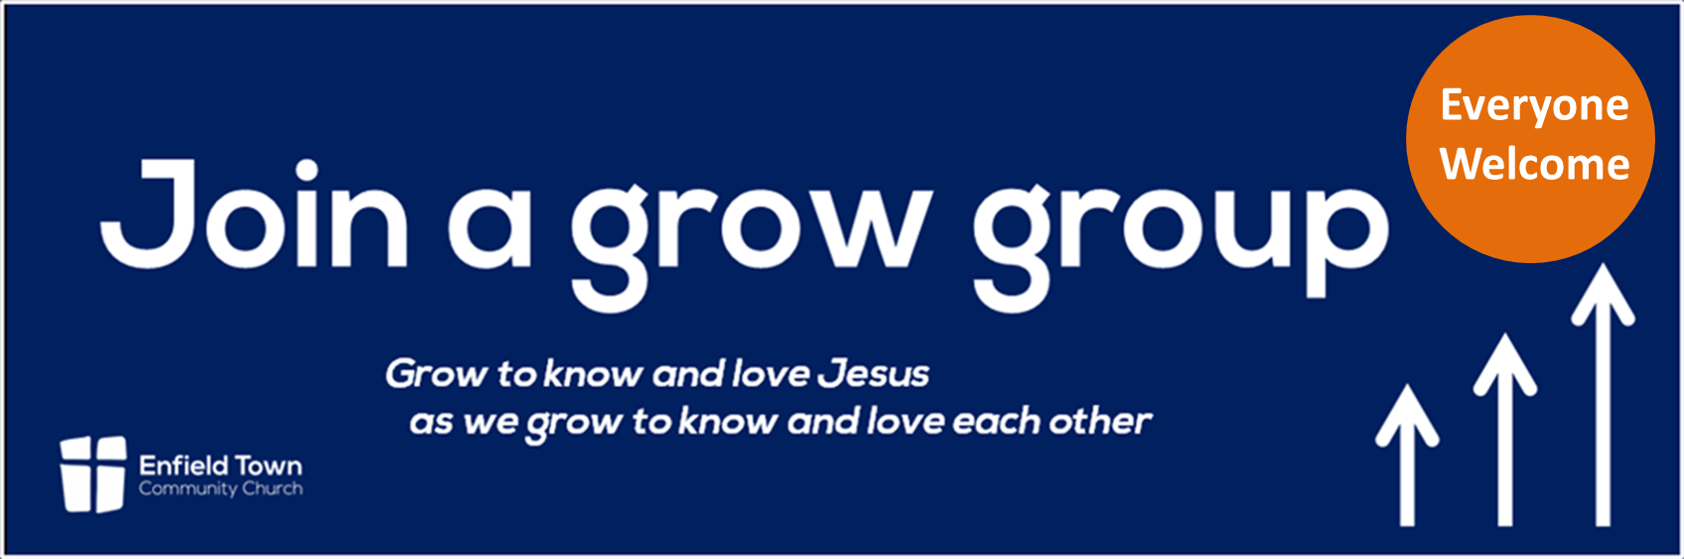 Grow group intro banner